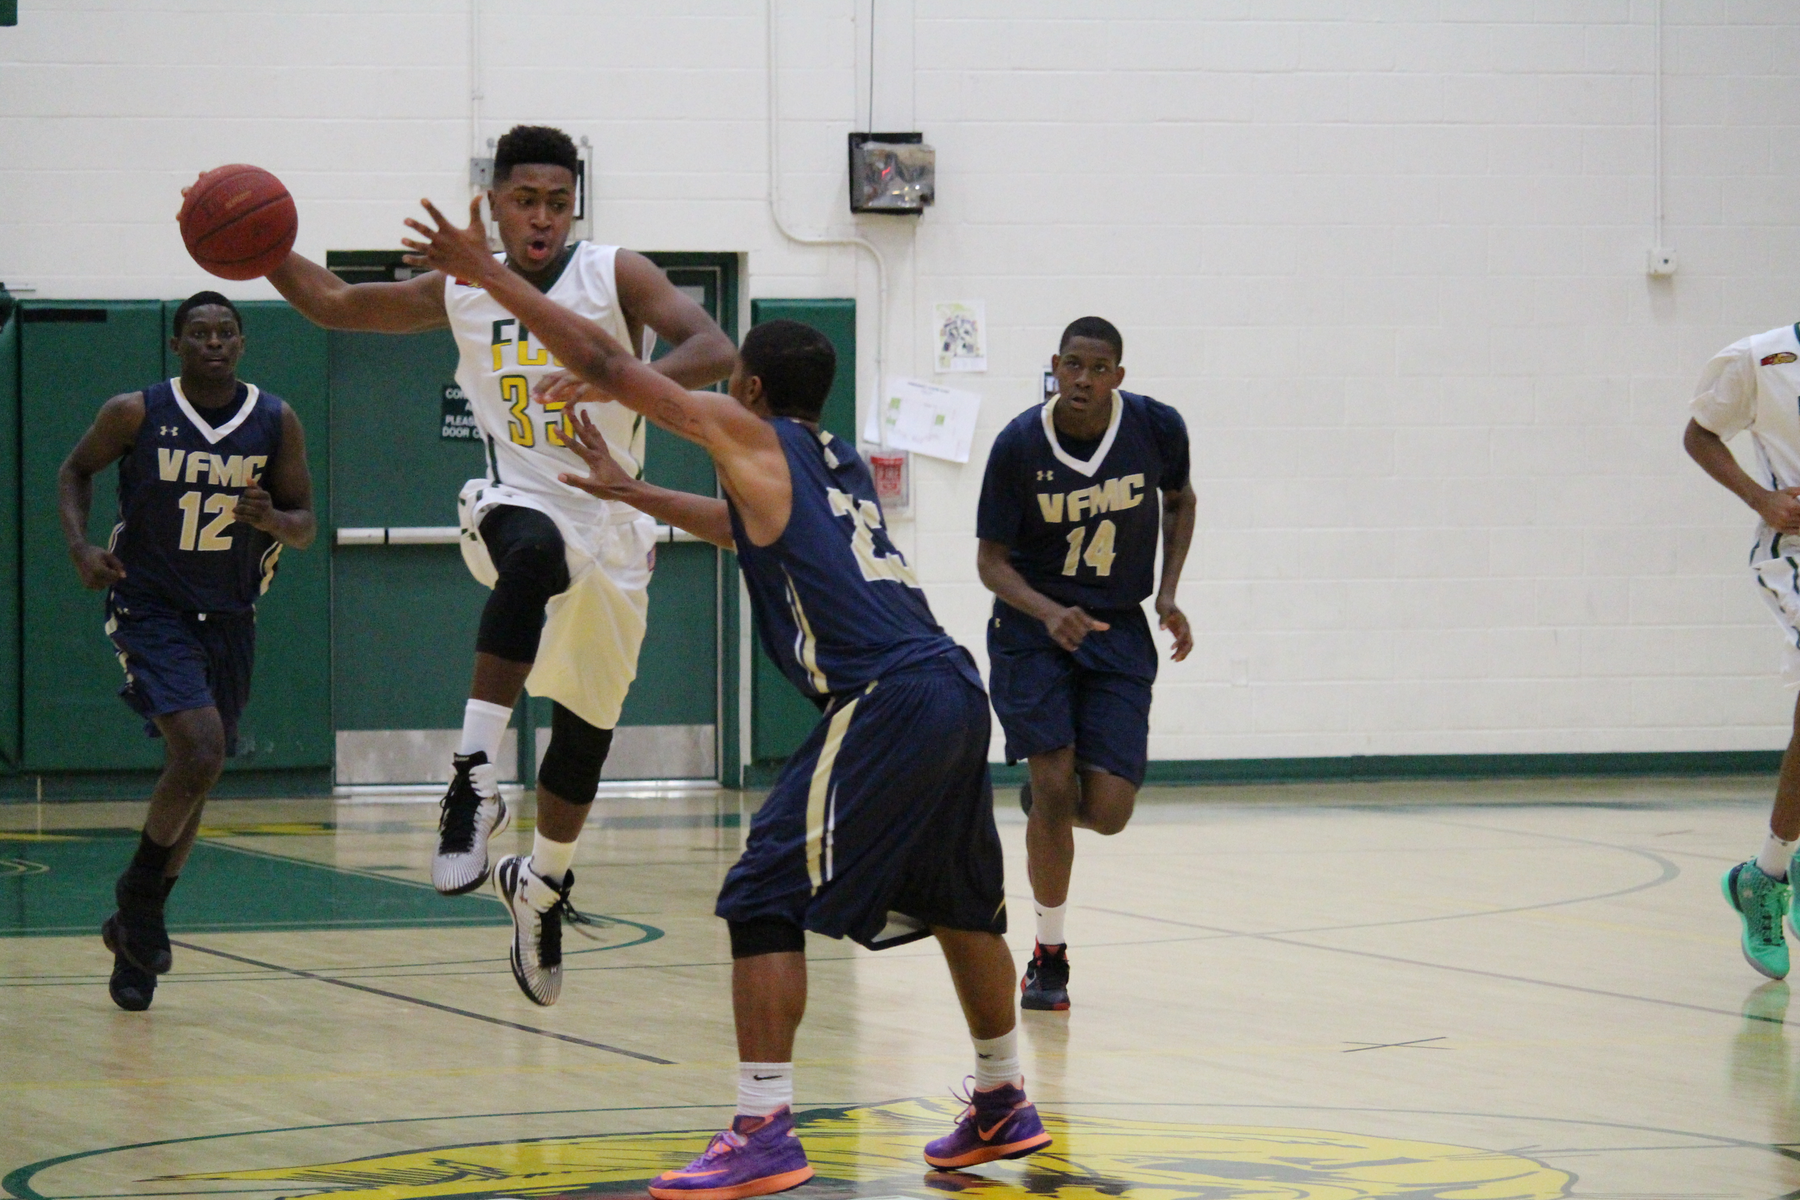 Keon Claiborne continues to produce for FCC contributing 12 points, six assists, and five rebounds against CSM.